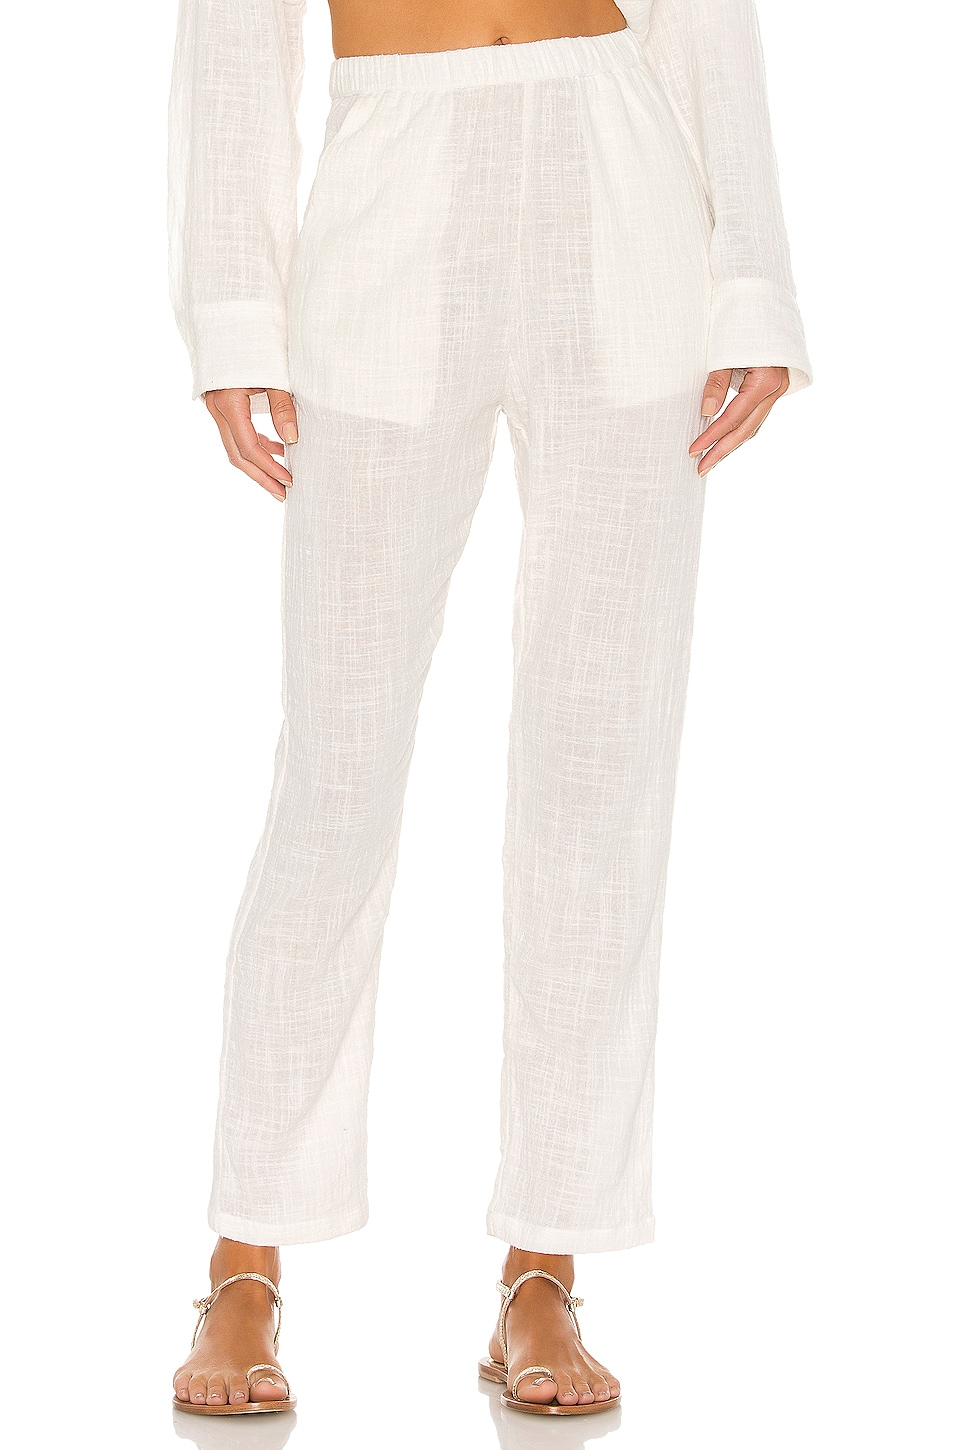 Indah Cypress Solid Simple Pant in Ivory